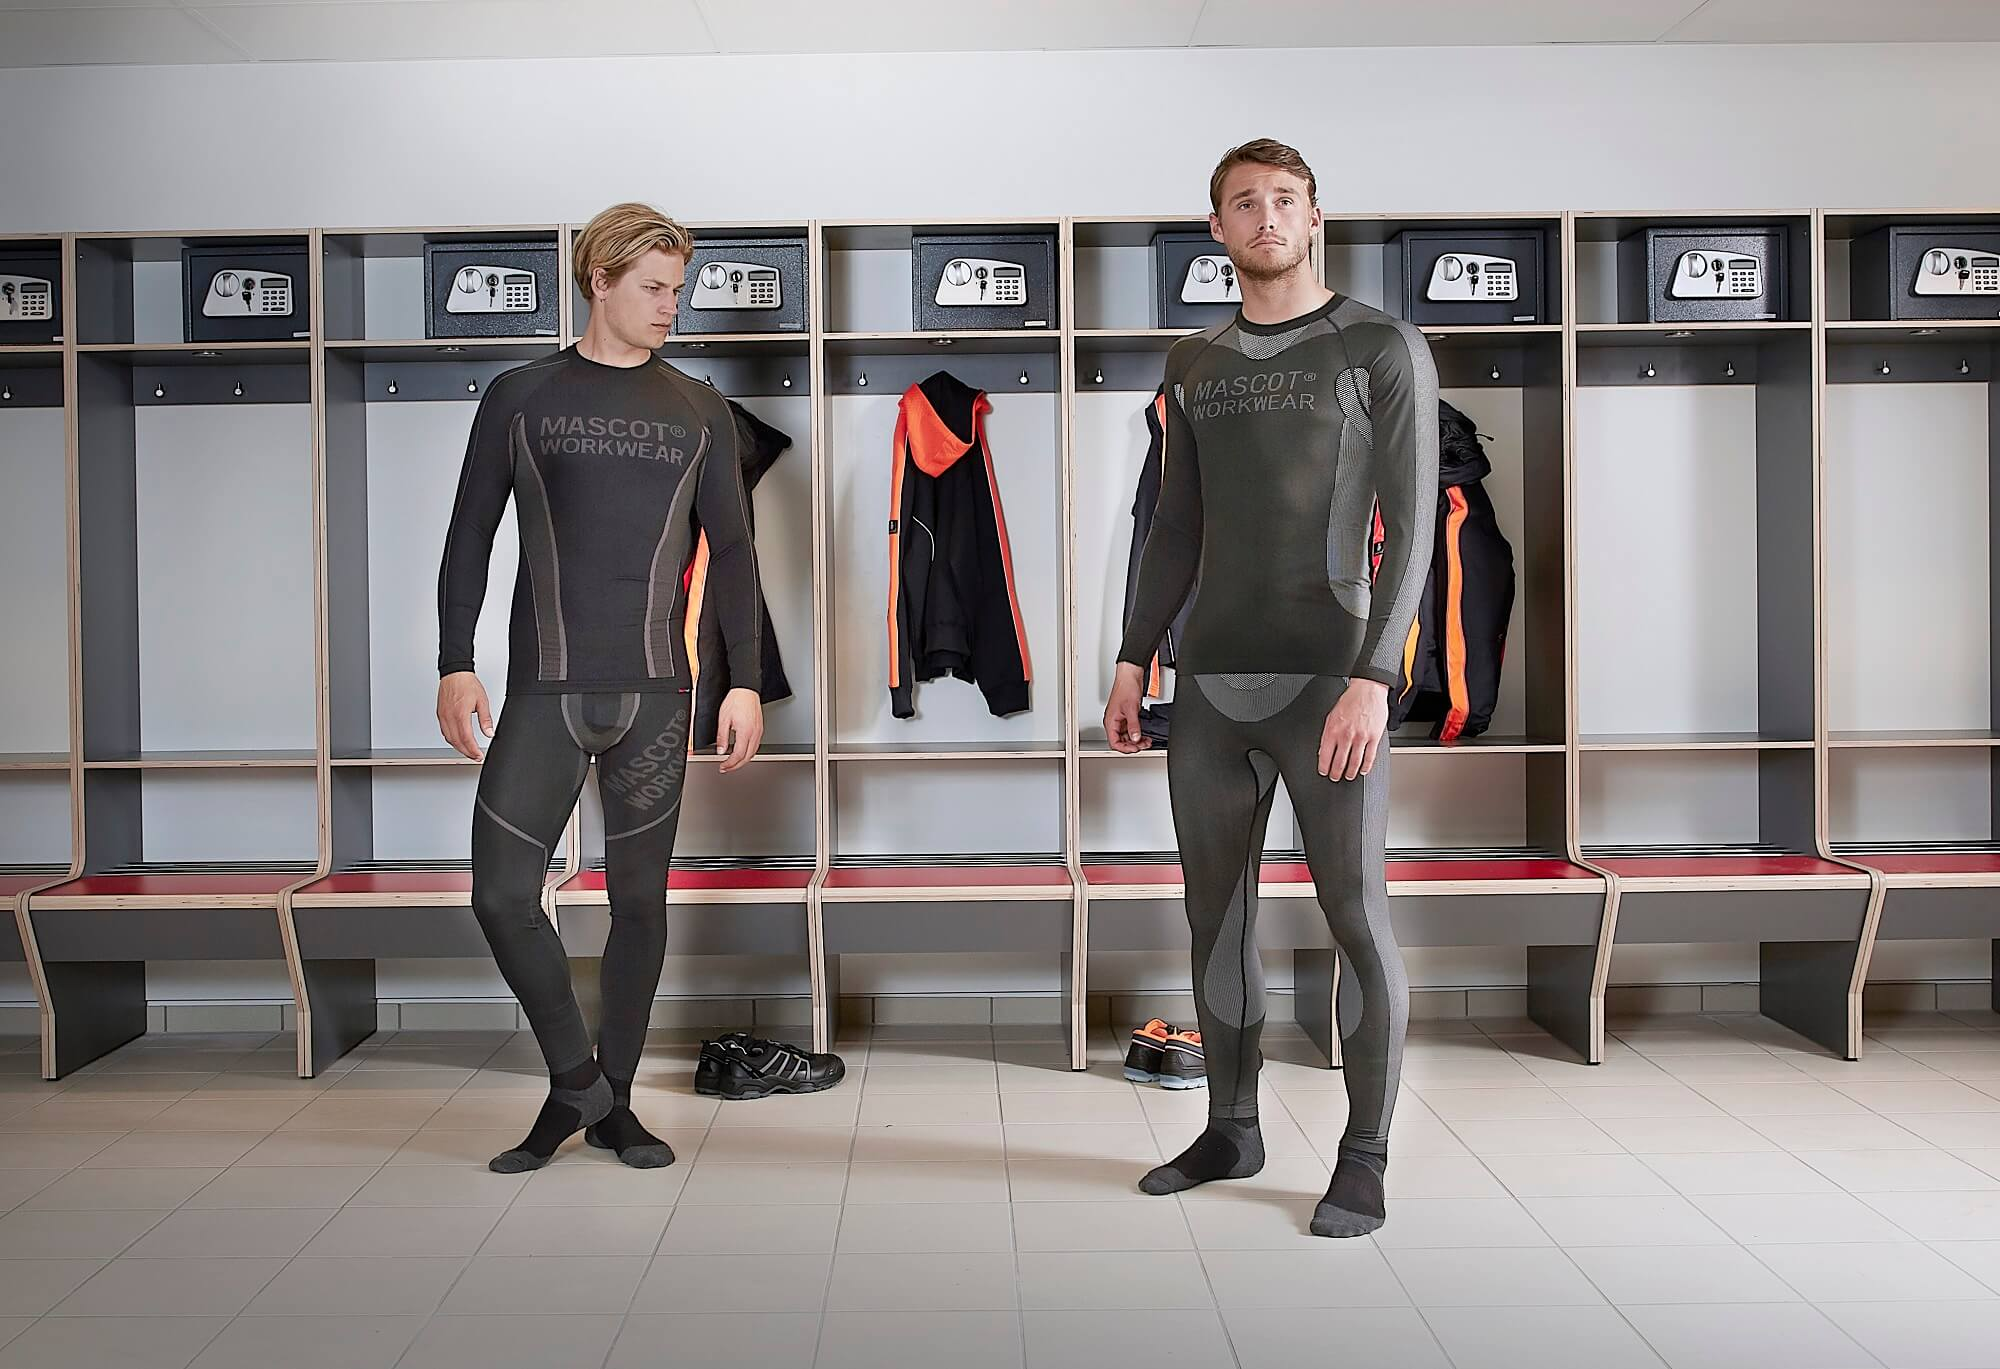 Functional Under Shirt & Functional Under Trousers - Thermal Underwear